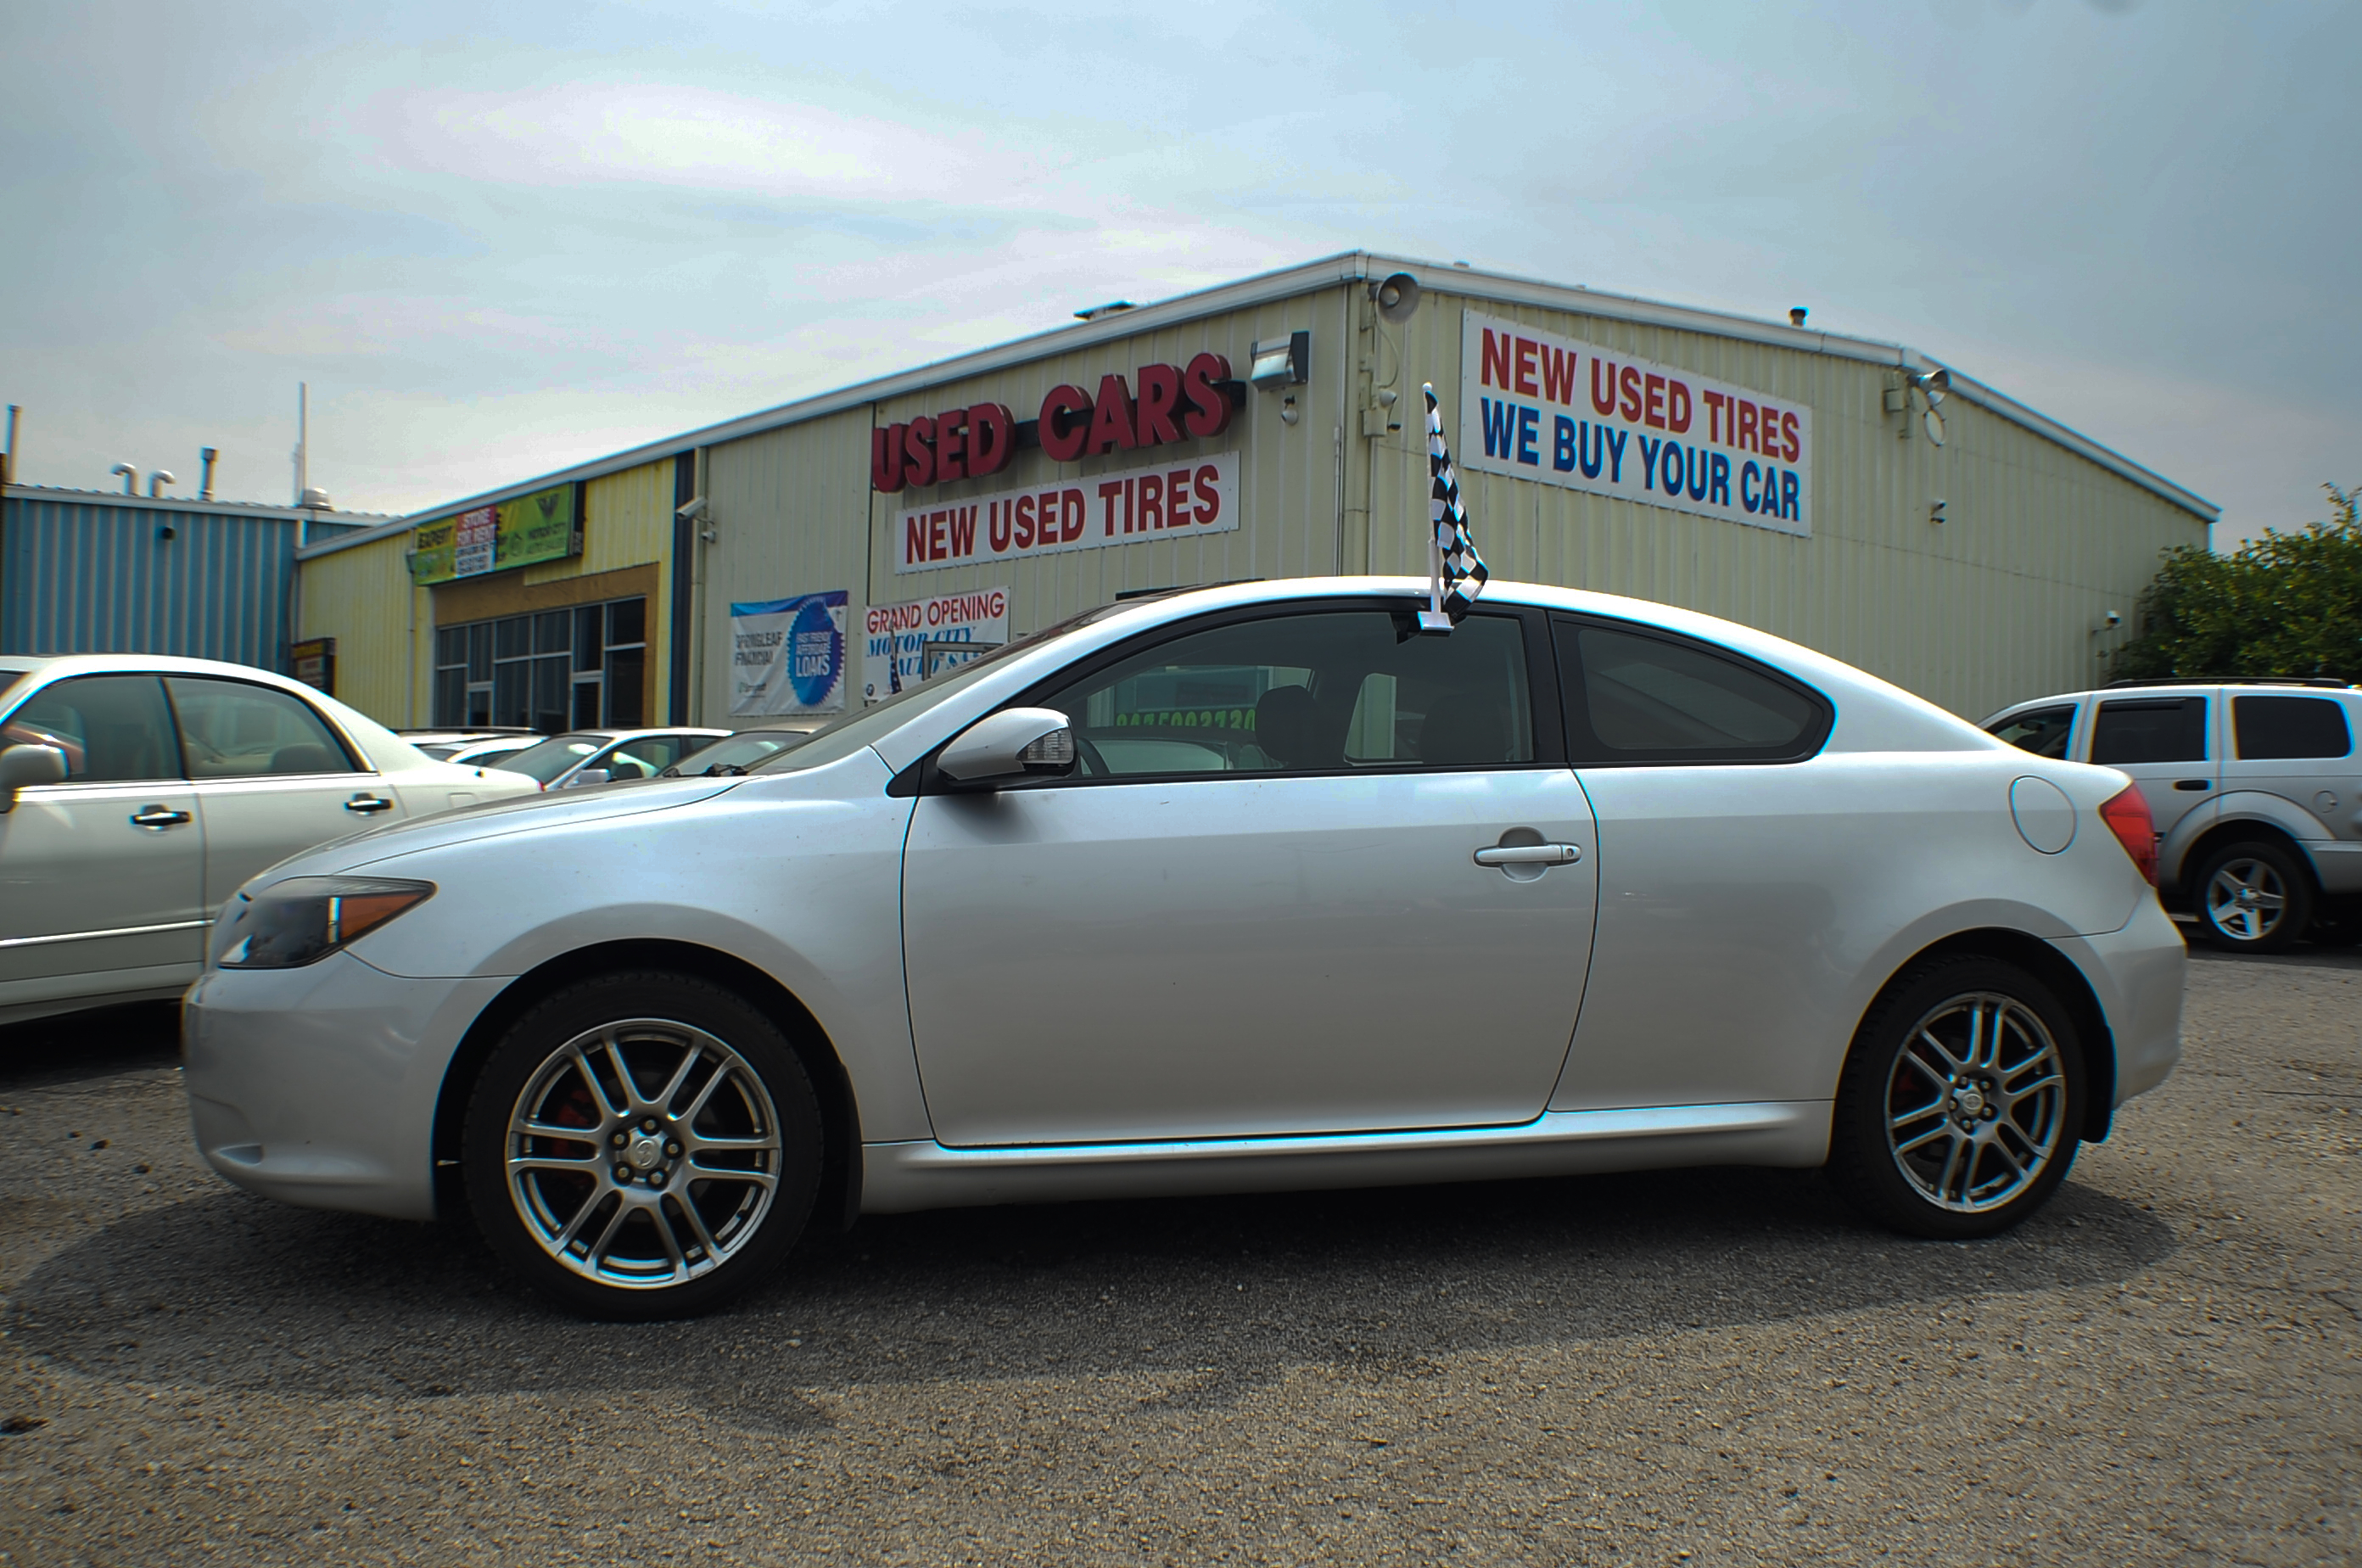 2006 scion tc manual shift coupe used car sale. Black Bedroom Furniture Sets. Home Design Ideas